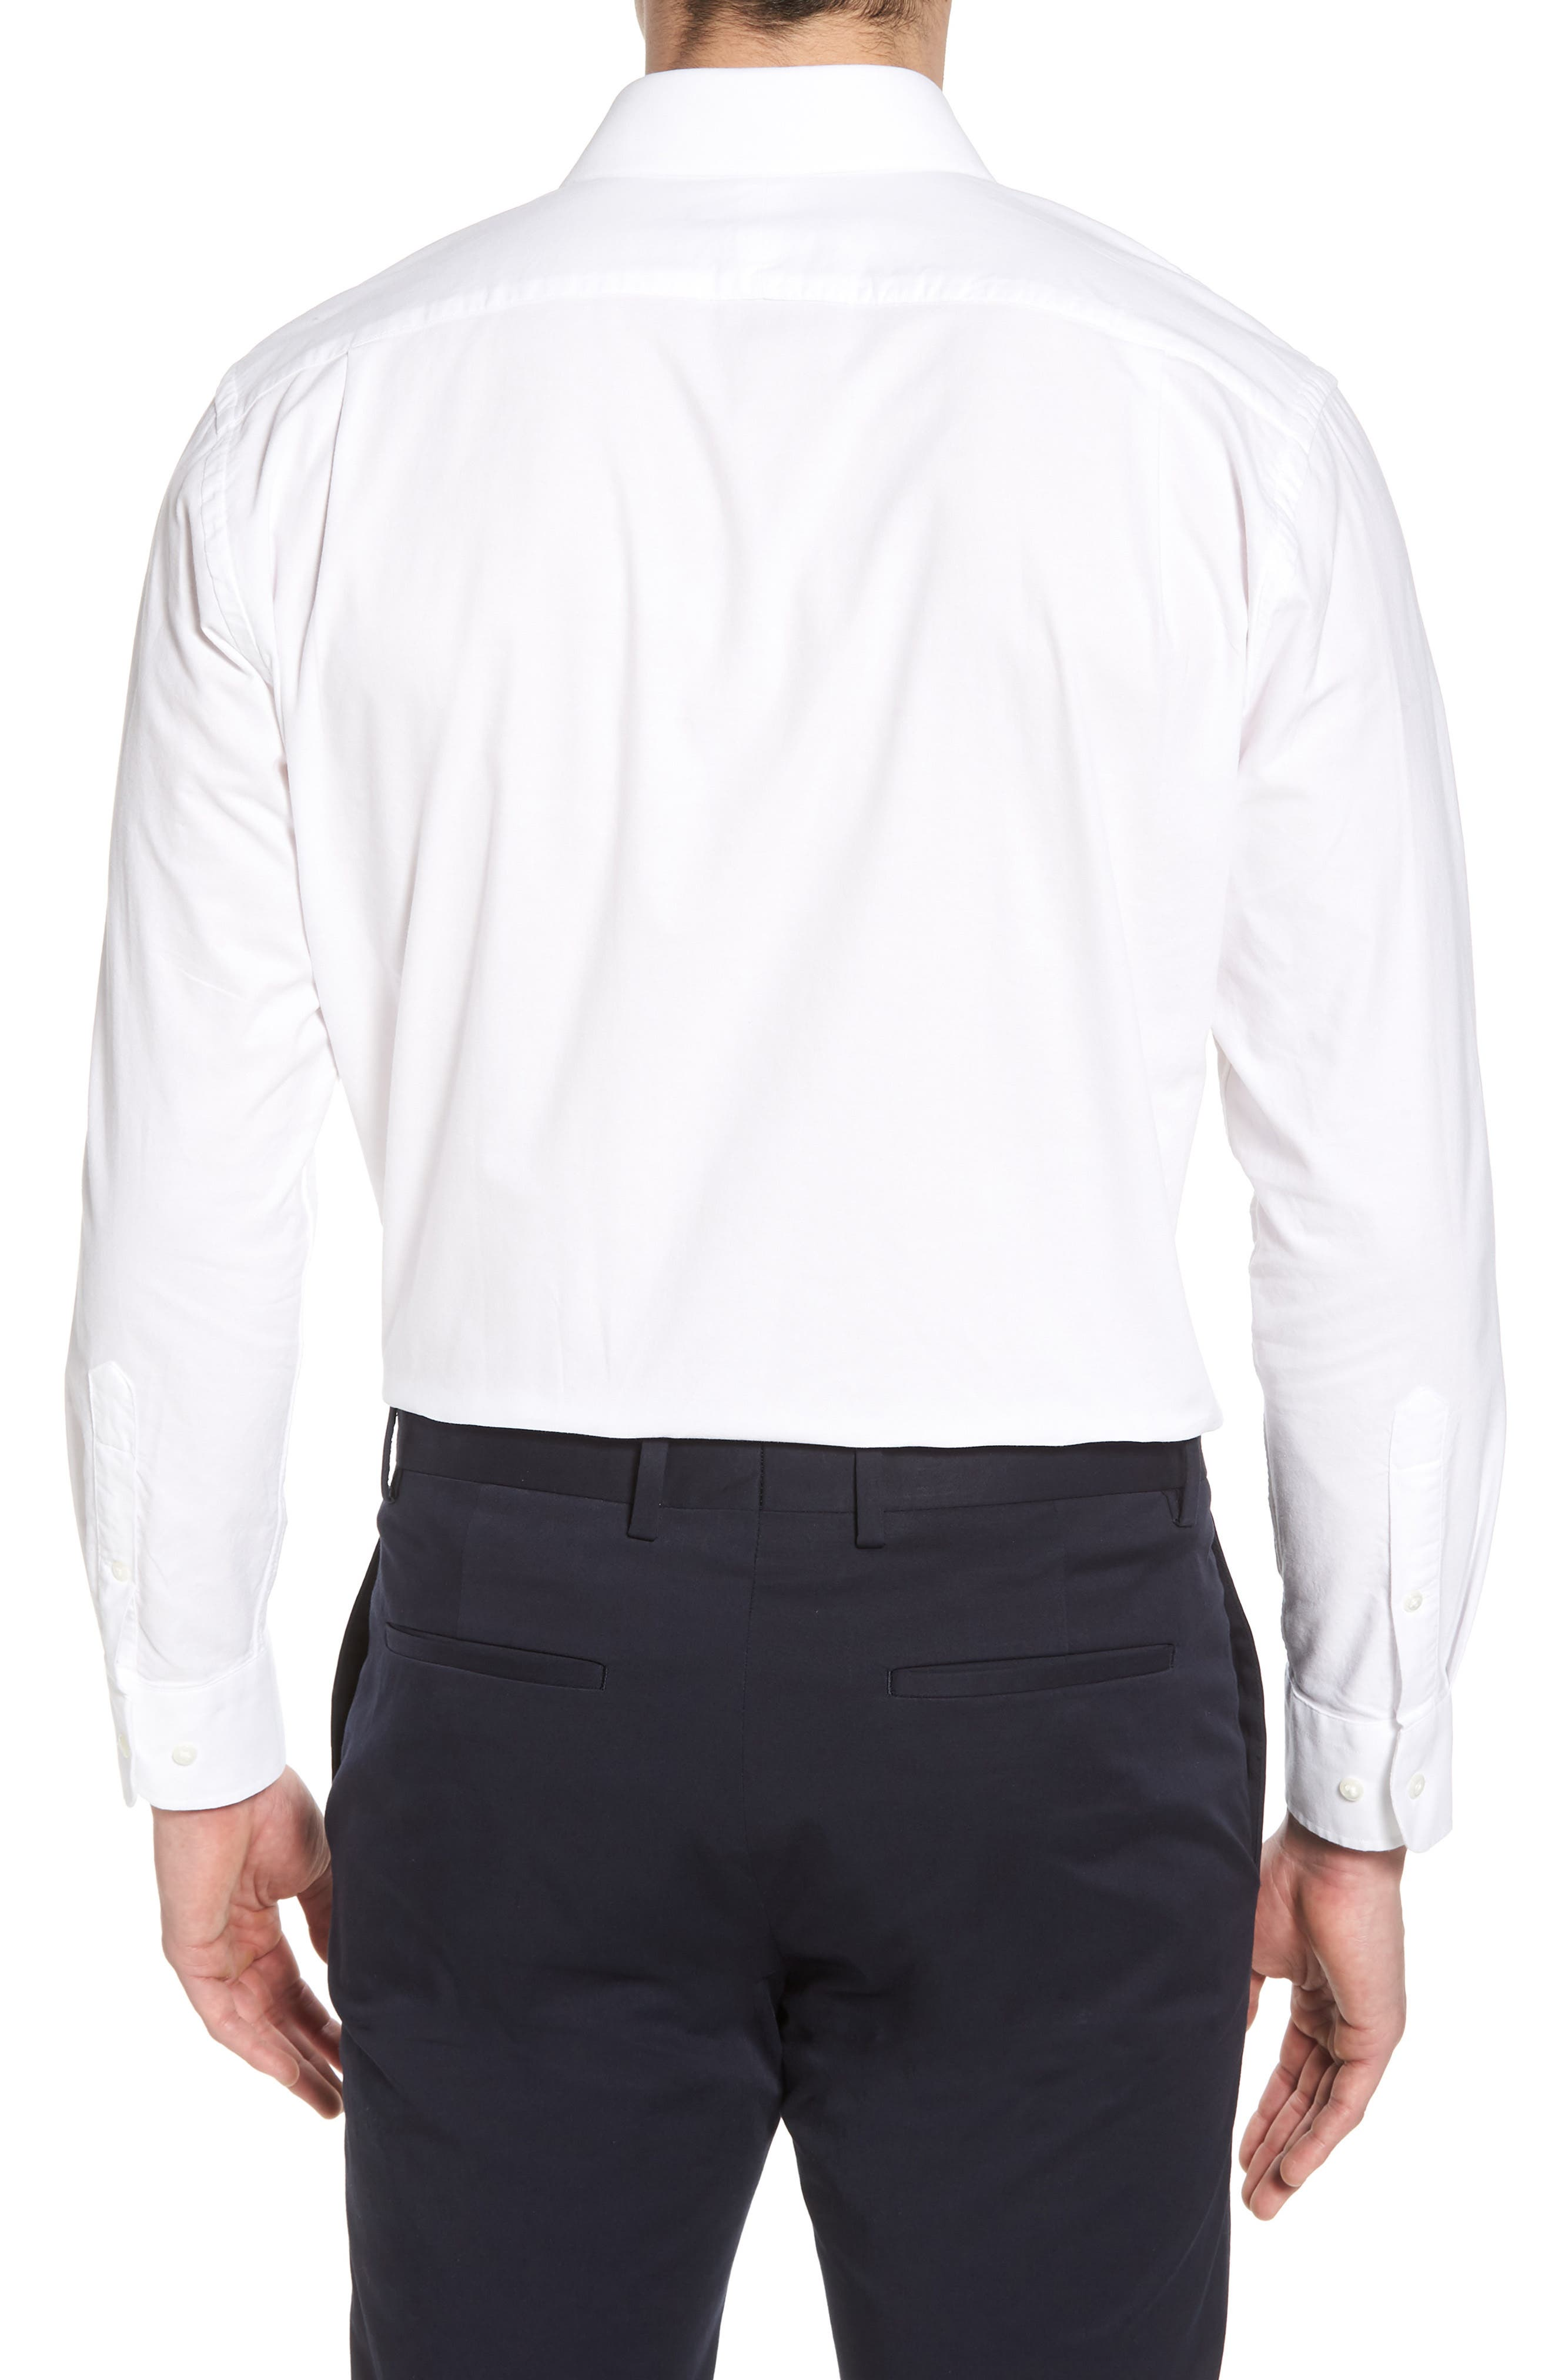 Trim Fit Solid Dress Shirt,                             Alternate thumbnail 3, color,                             White